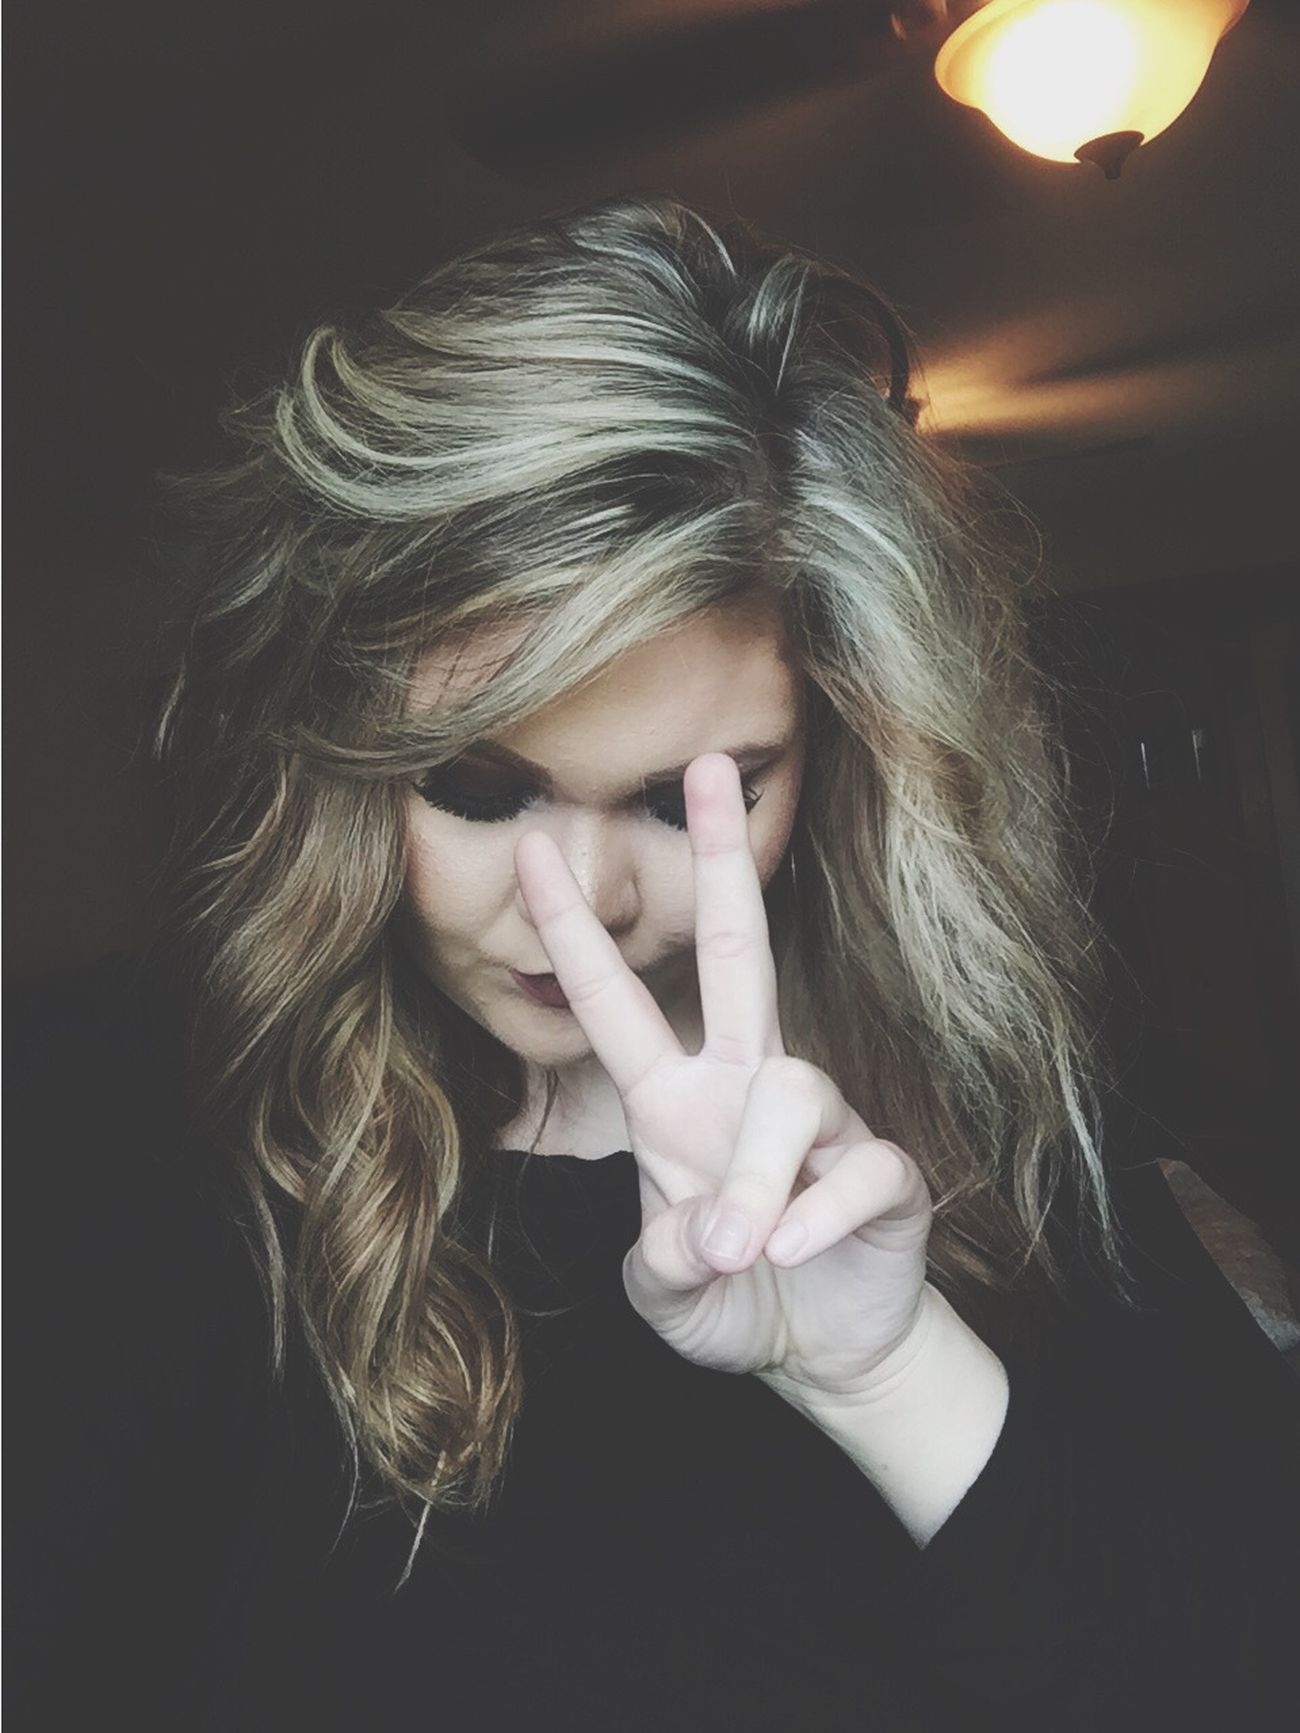 Peace ✌ One Person Human Hand Women Indoors  Close-up Real People Blond Hair Young Women Young Adult Adult People Day Adults Only Snapchat Comments Are Welcome Hello World Sunday Morning Happiness Instagram Pics